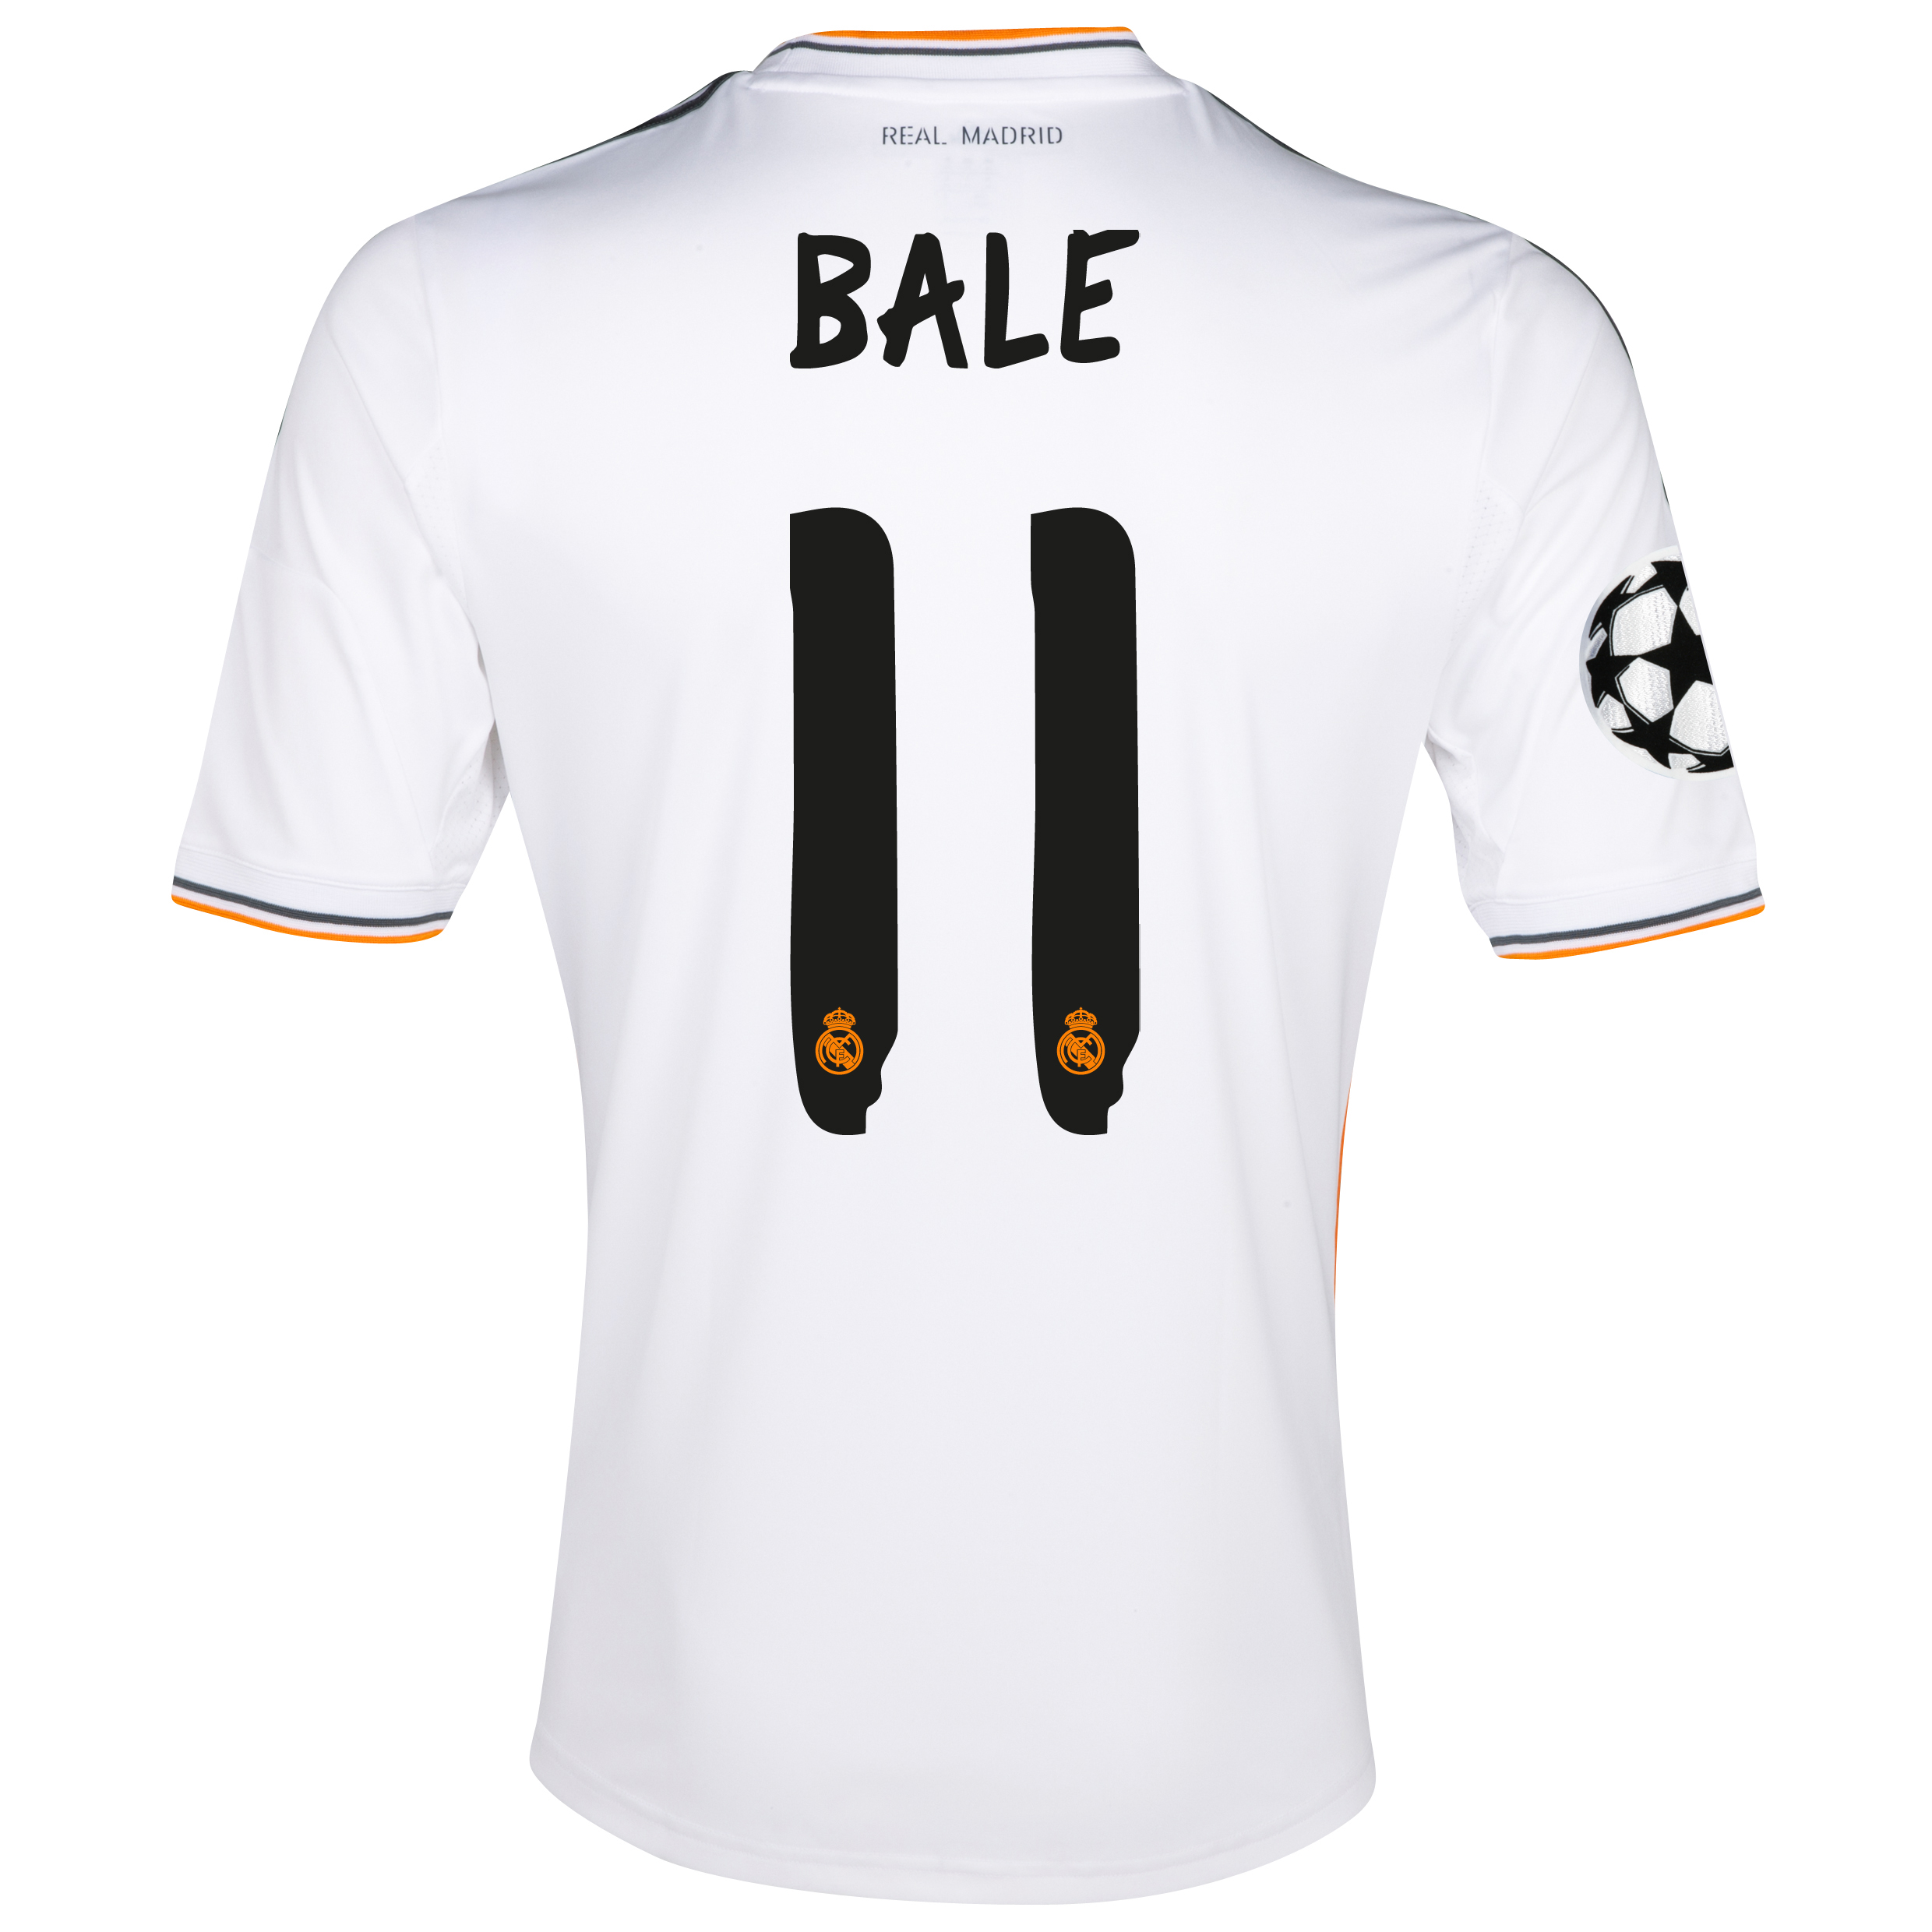 Real Madrid UEFA Champions League Home Shirt 2013/14 with Bale 11 printing